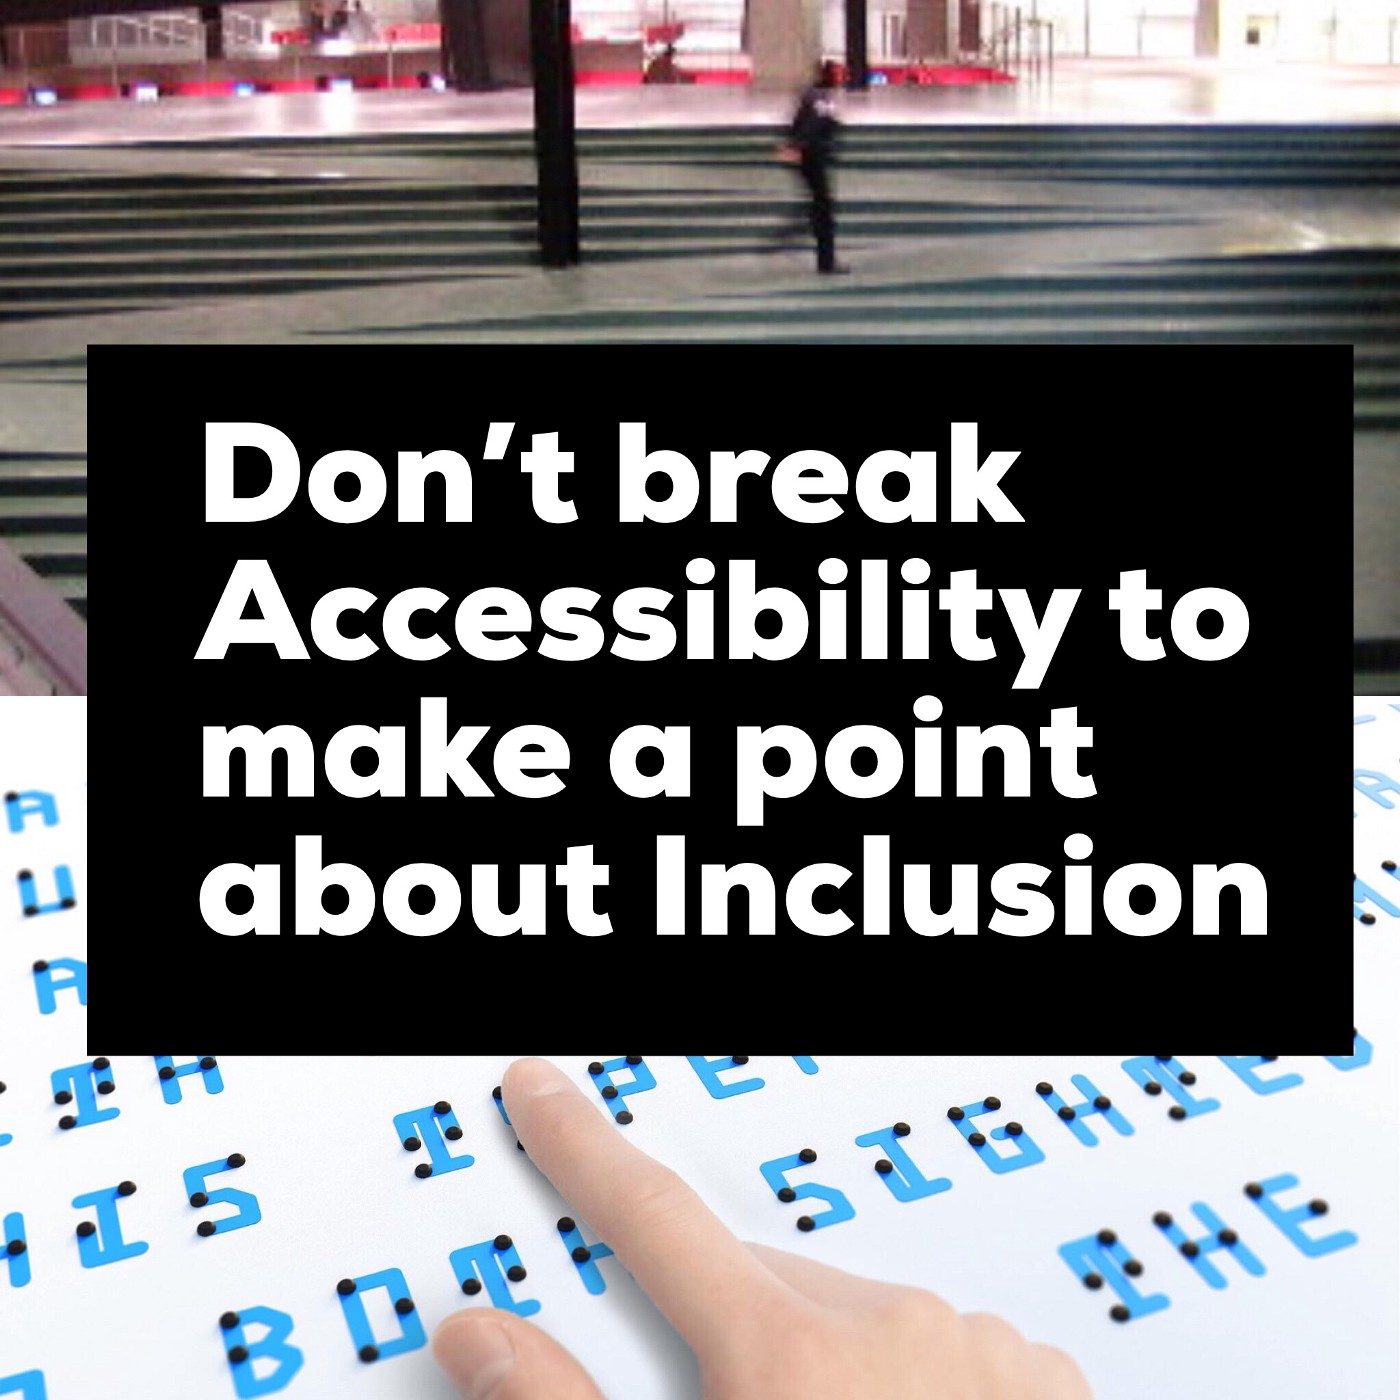 Text—Don't break accessibility to make a point about inclusion—laid over photo of Braille Neue mixed Braille/visual text